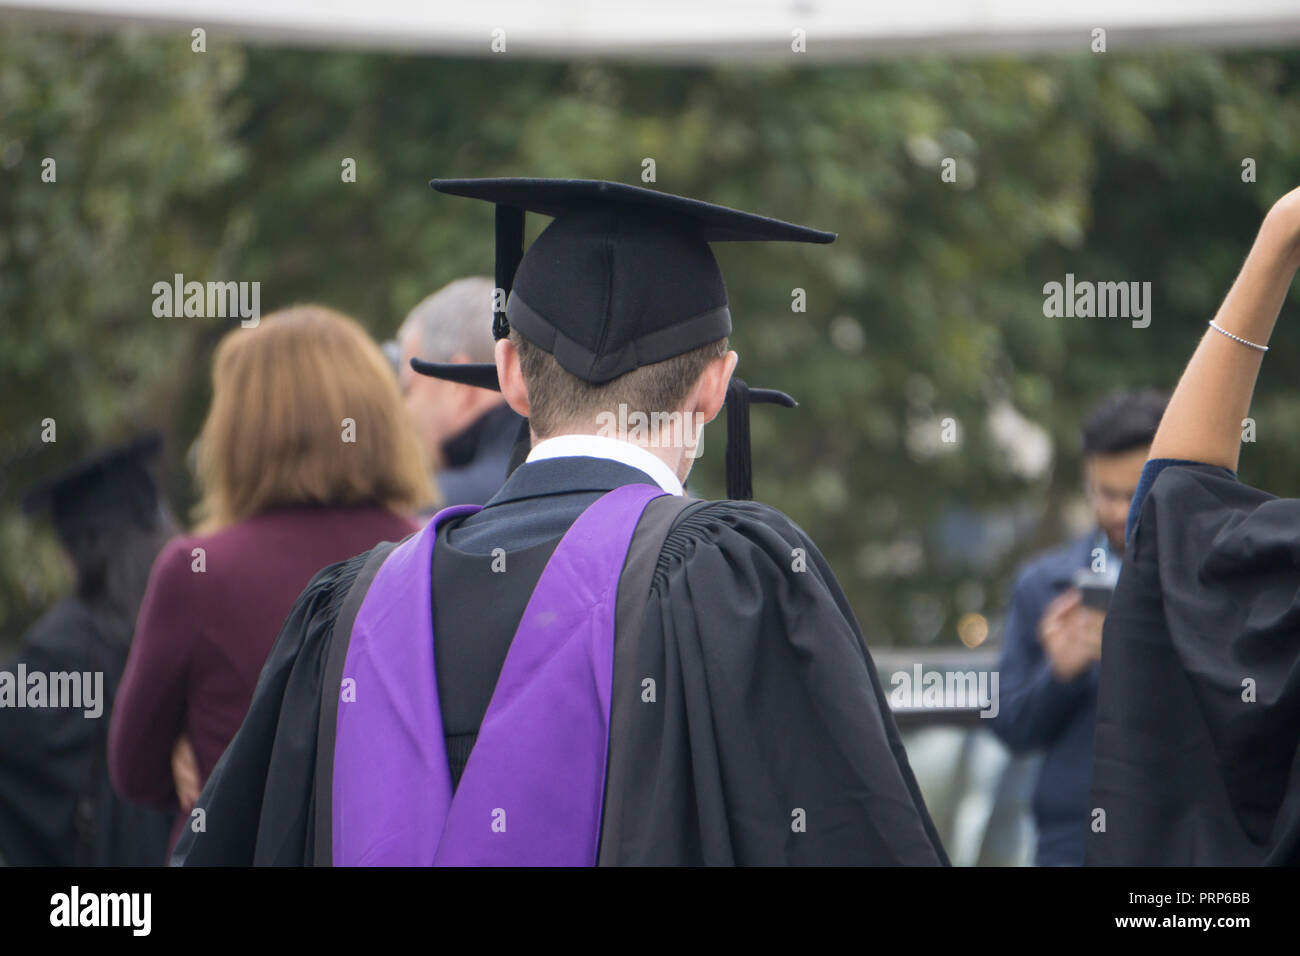 Student graduating with a university degree - Stock Image